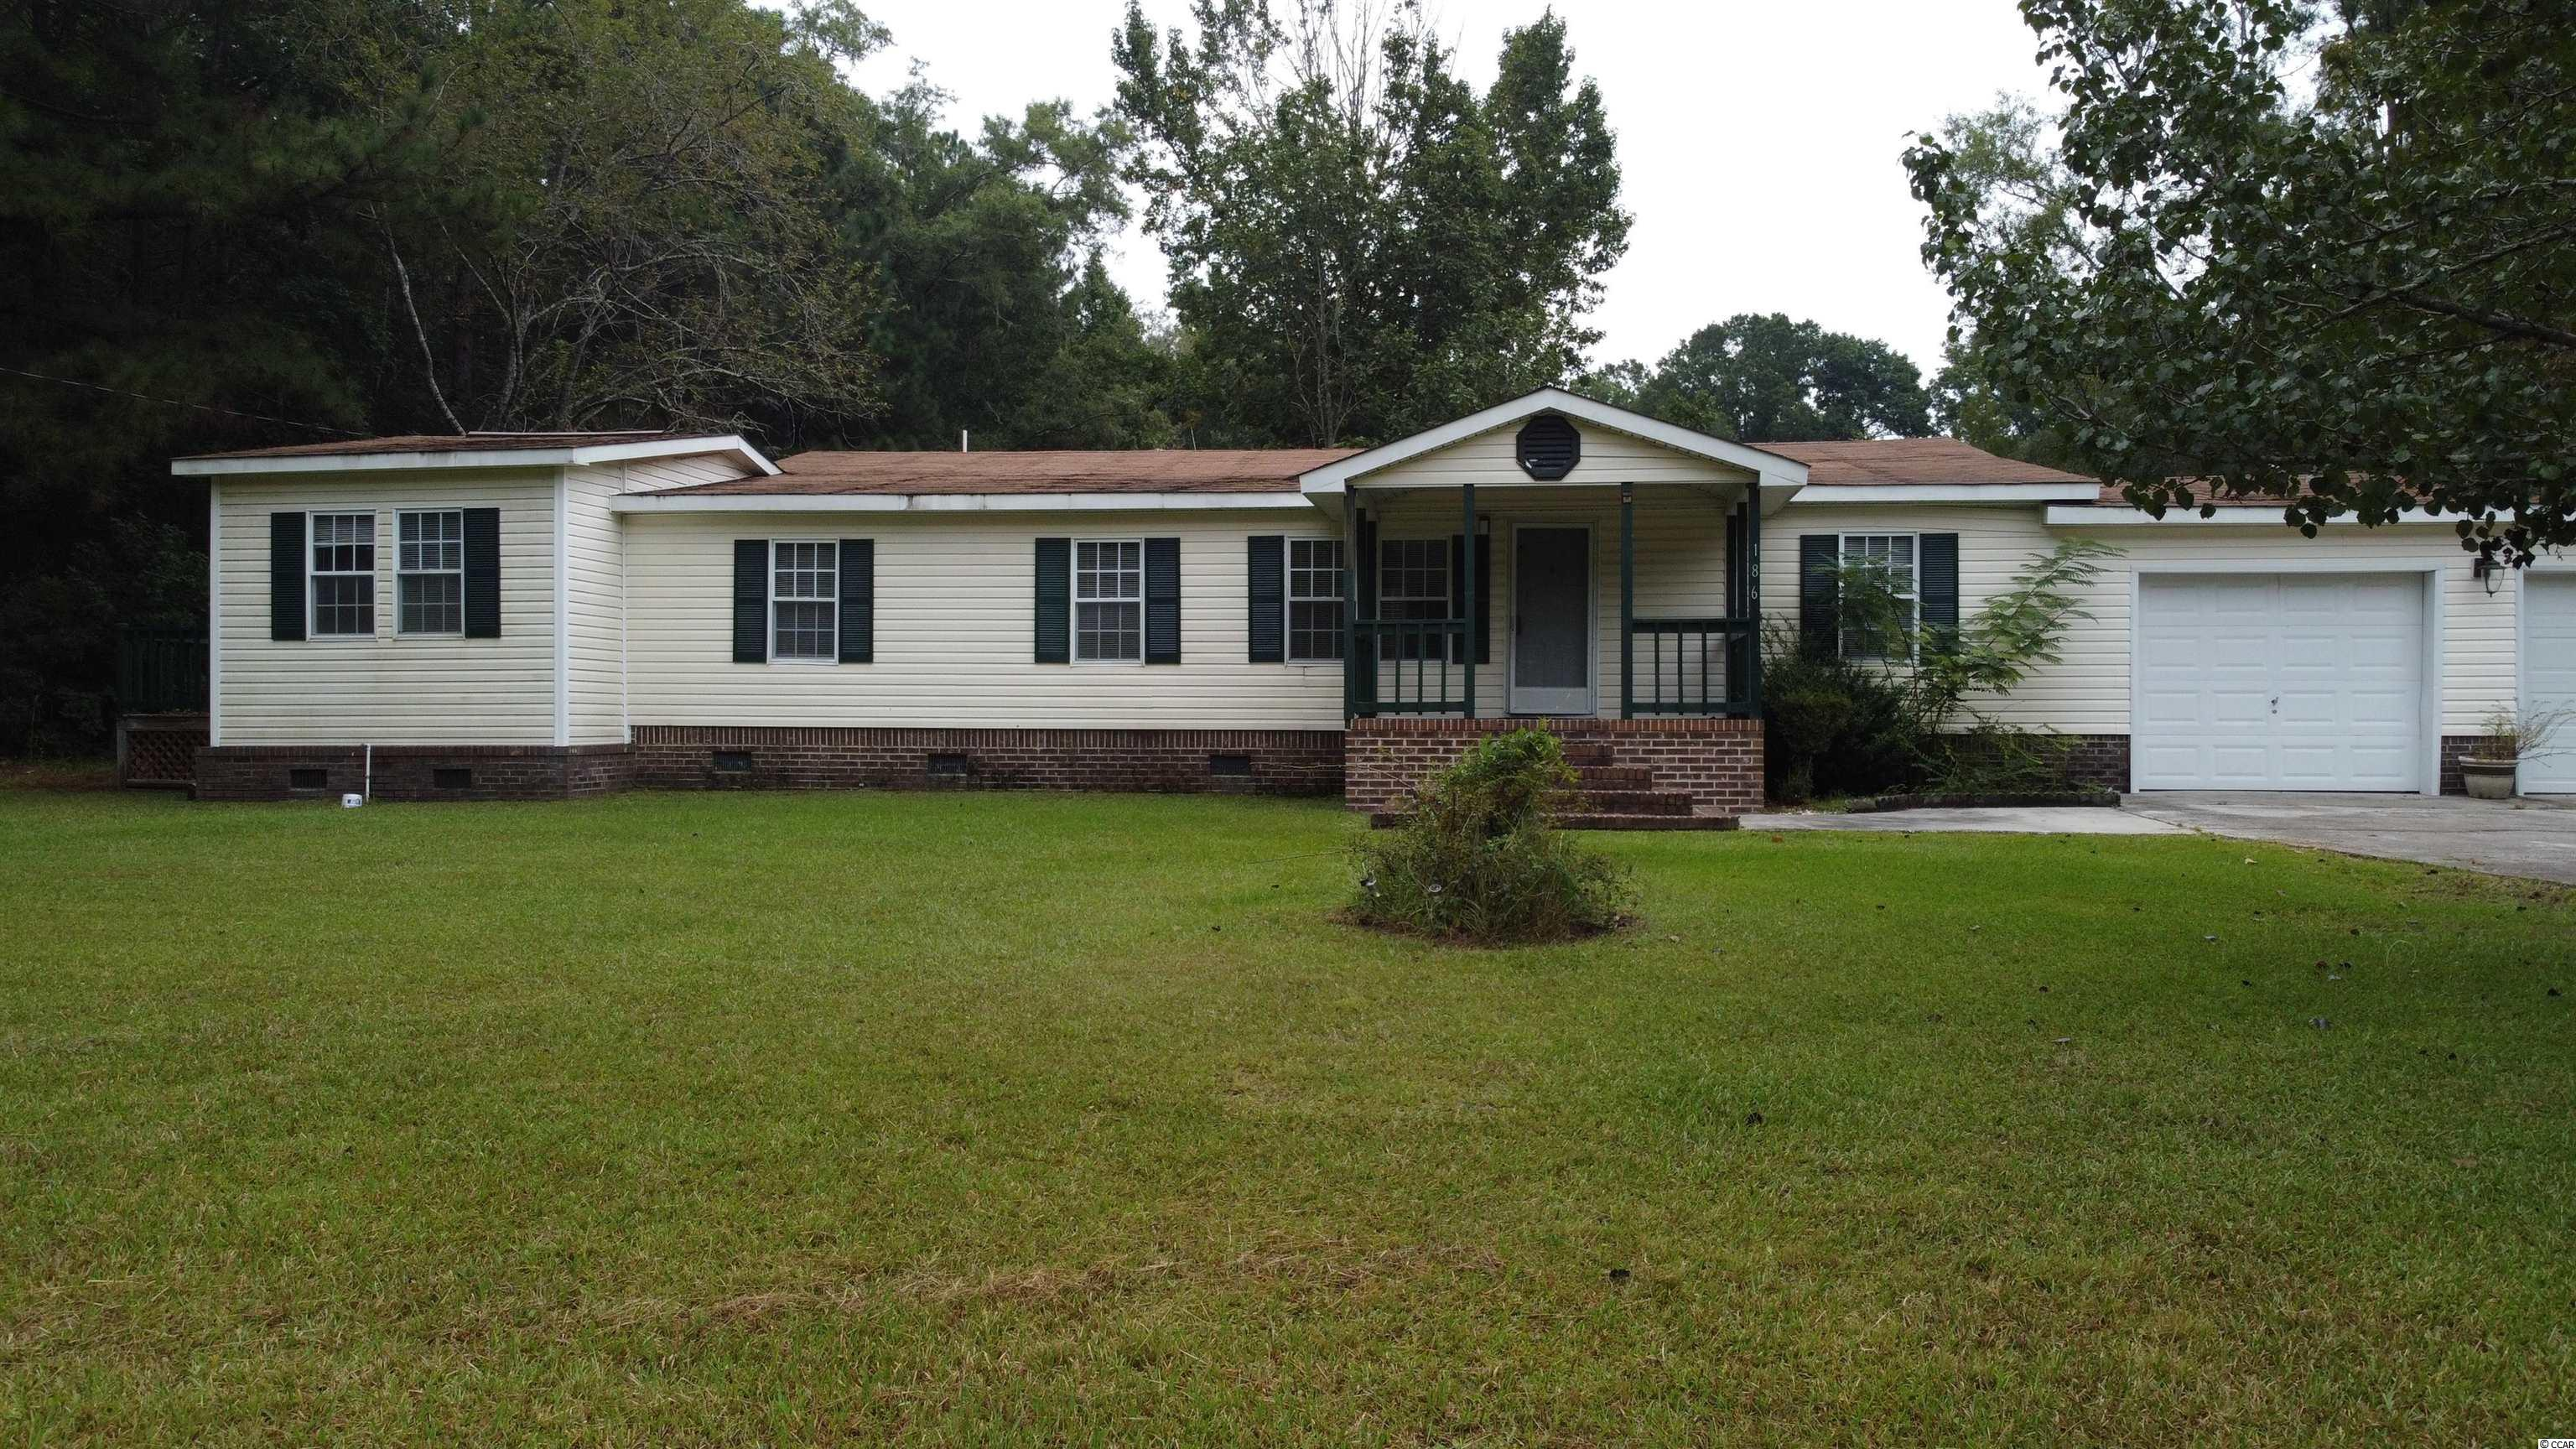 Three bedroom two bath home on two acres of land. There is also a manufactured home in the back that is included with this property. Square footage is approximate and not guaranteed. Buyer is responsible for verification.